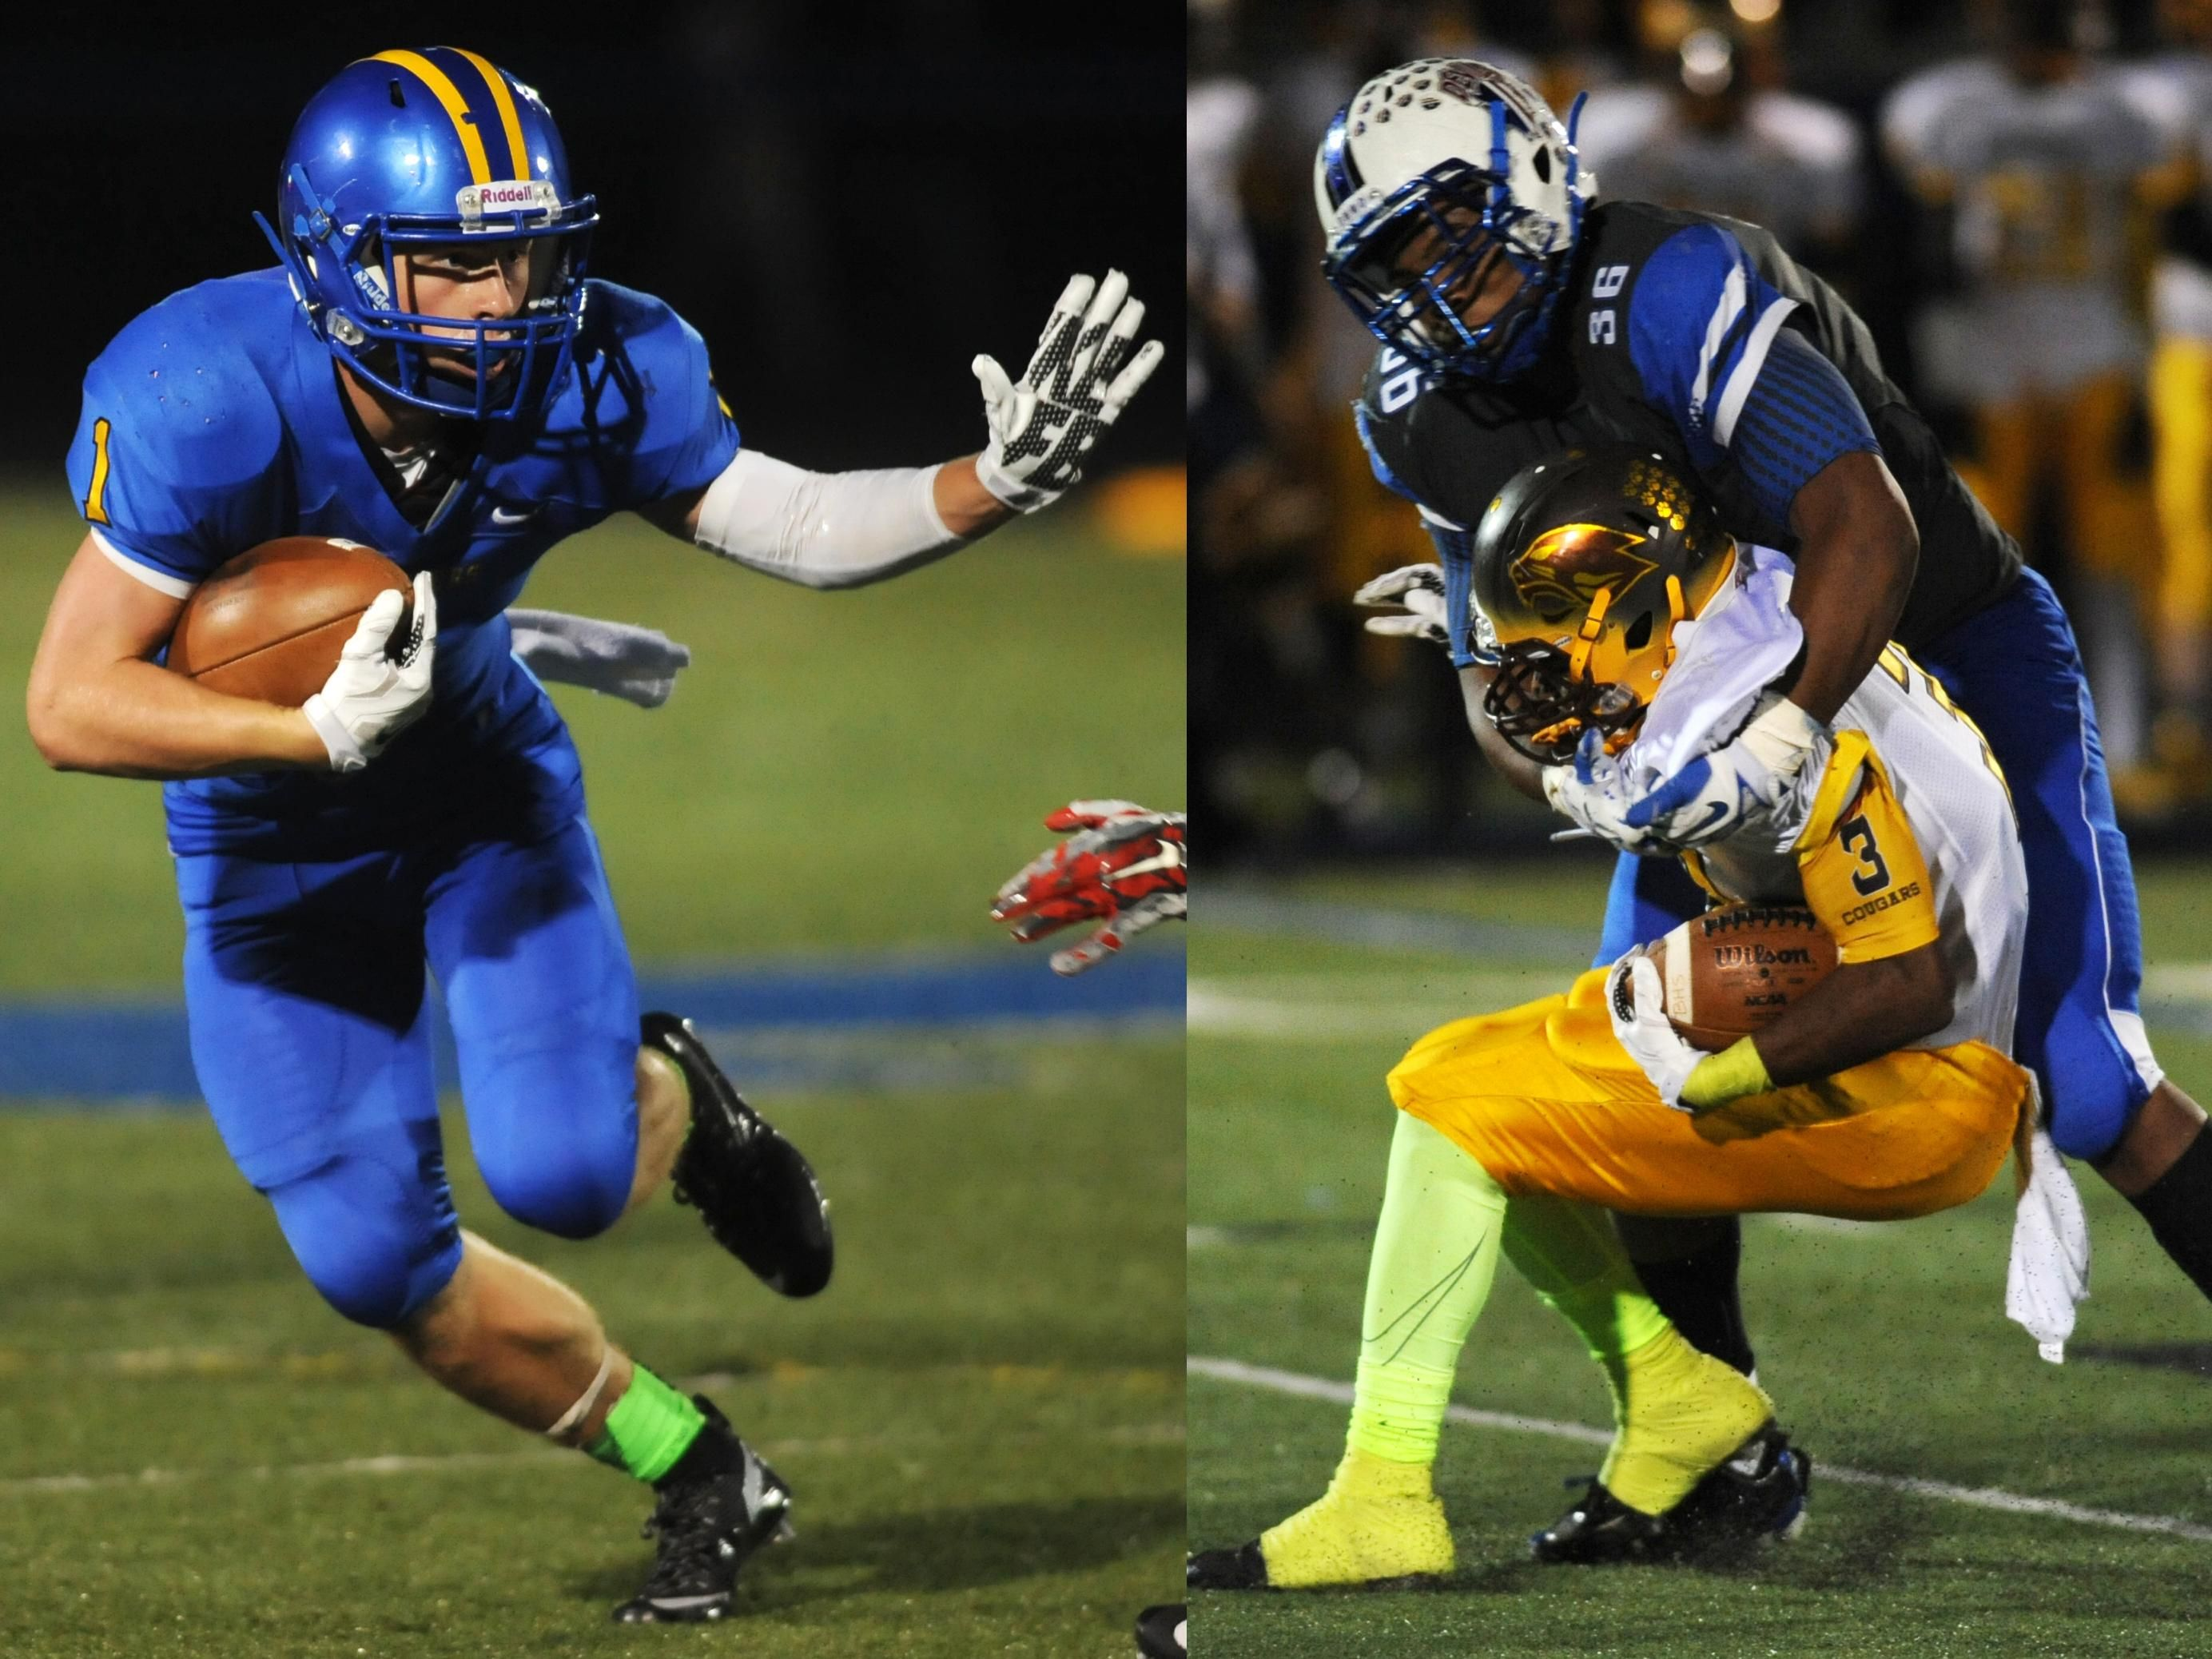 Maysville's Chase Roberts, left, is the Times Recorder's Prime Time offensive player of the year. Zanesville's Leondre Crosby, right, is the defensive player of the year.